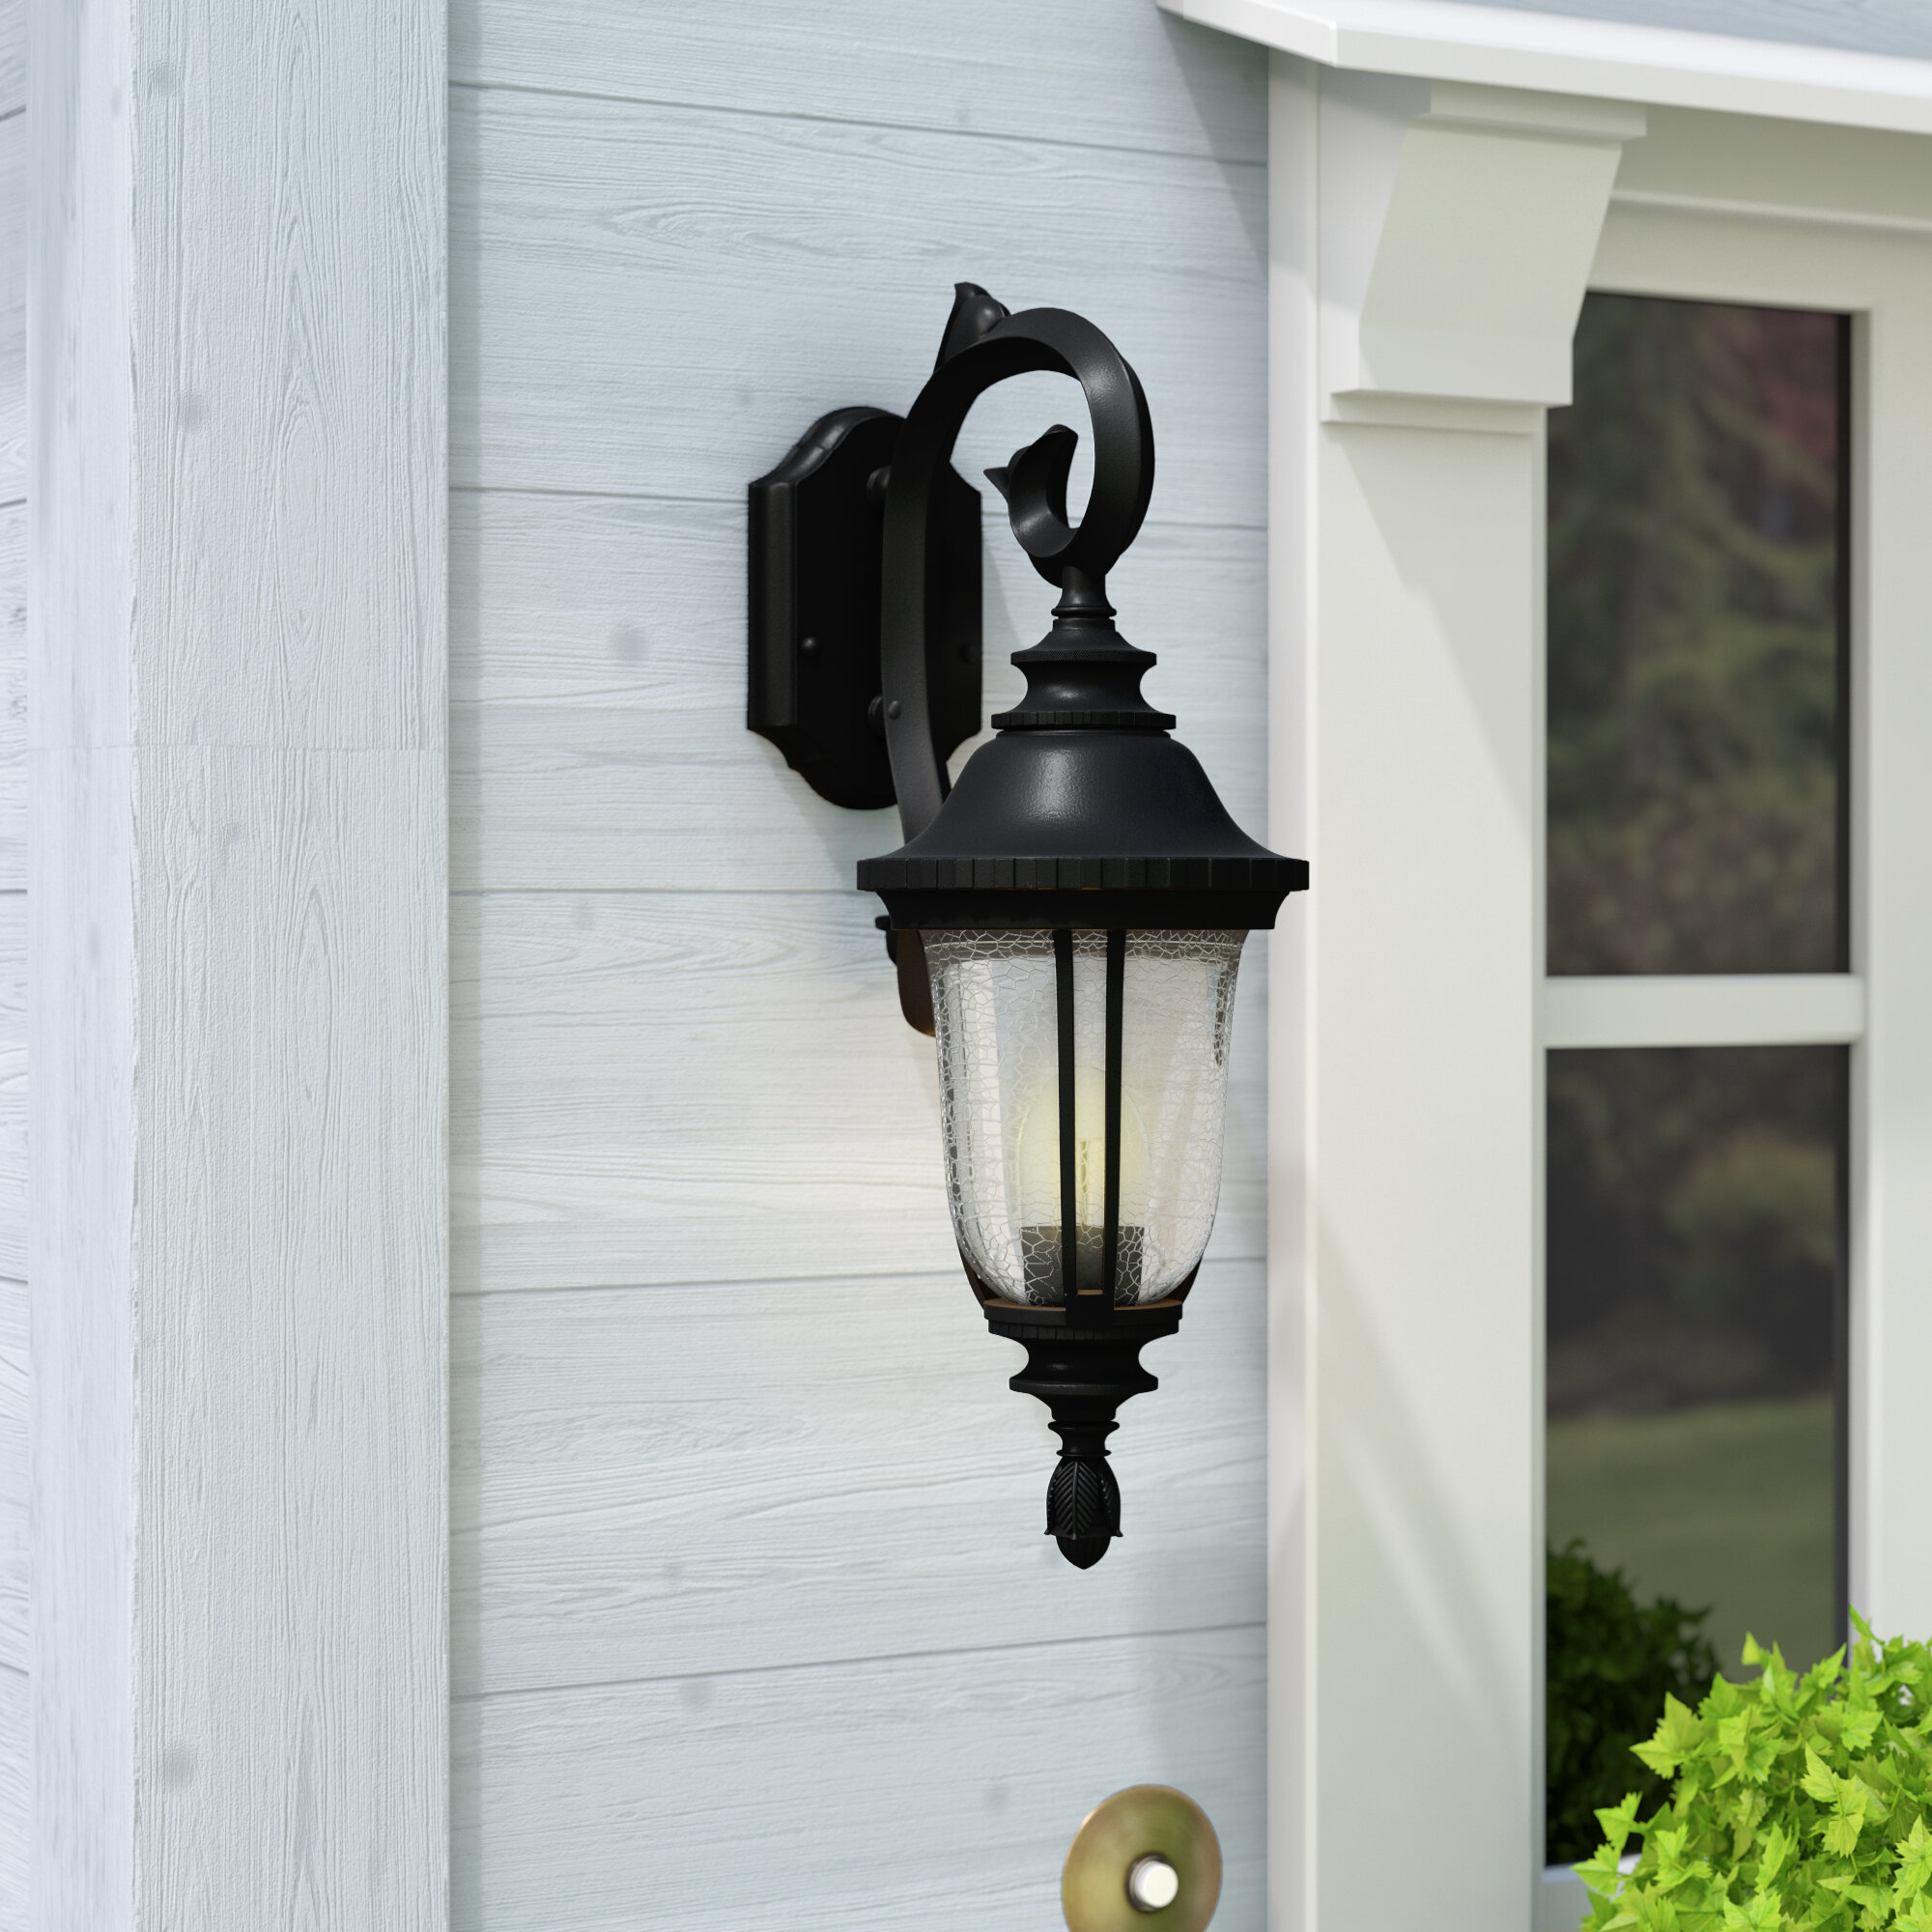 Charlton Home Weiland Outdoor Wall Lantern Reviews Wayfair